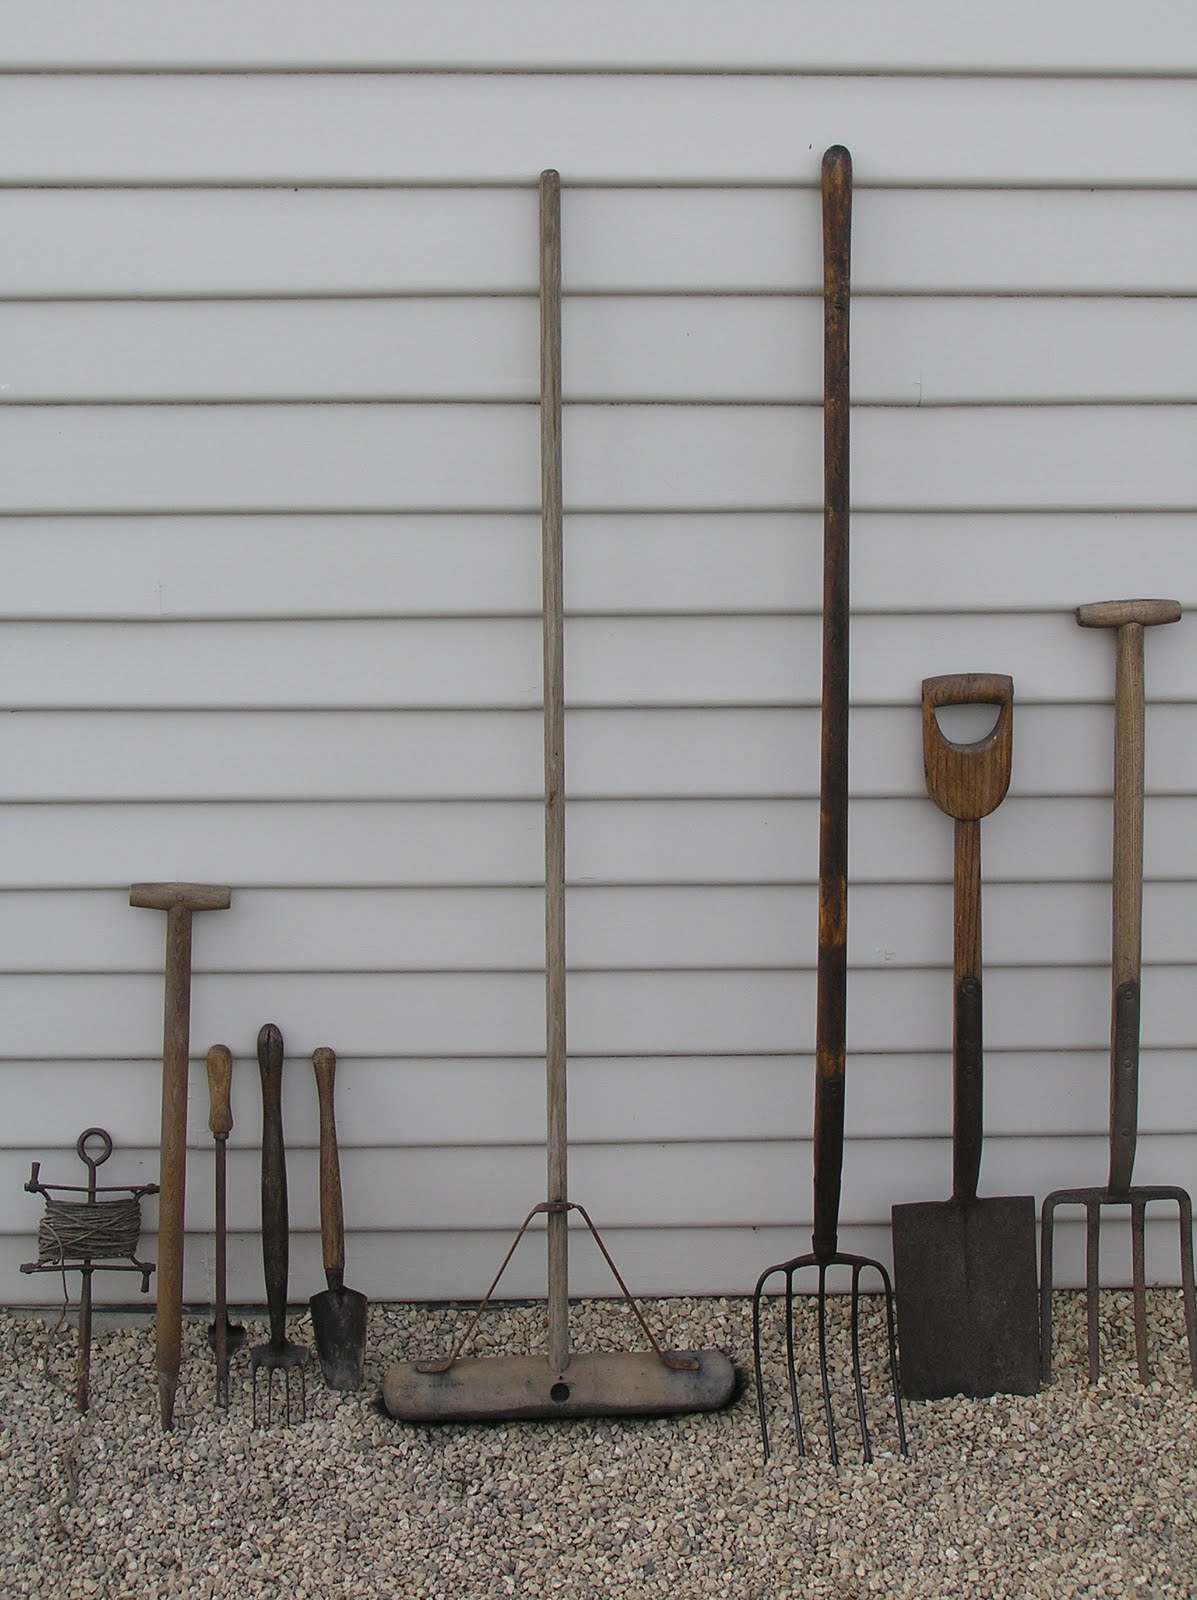 The drill hall emporium weekend vegetable gardening with for Vegetable garden tools